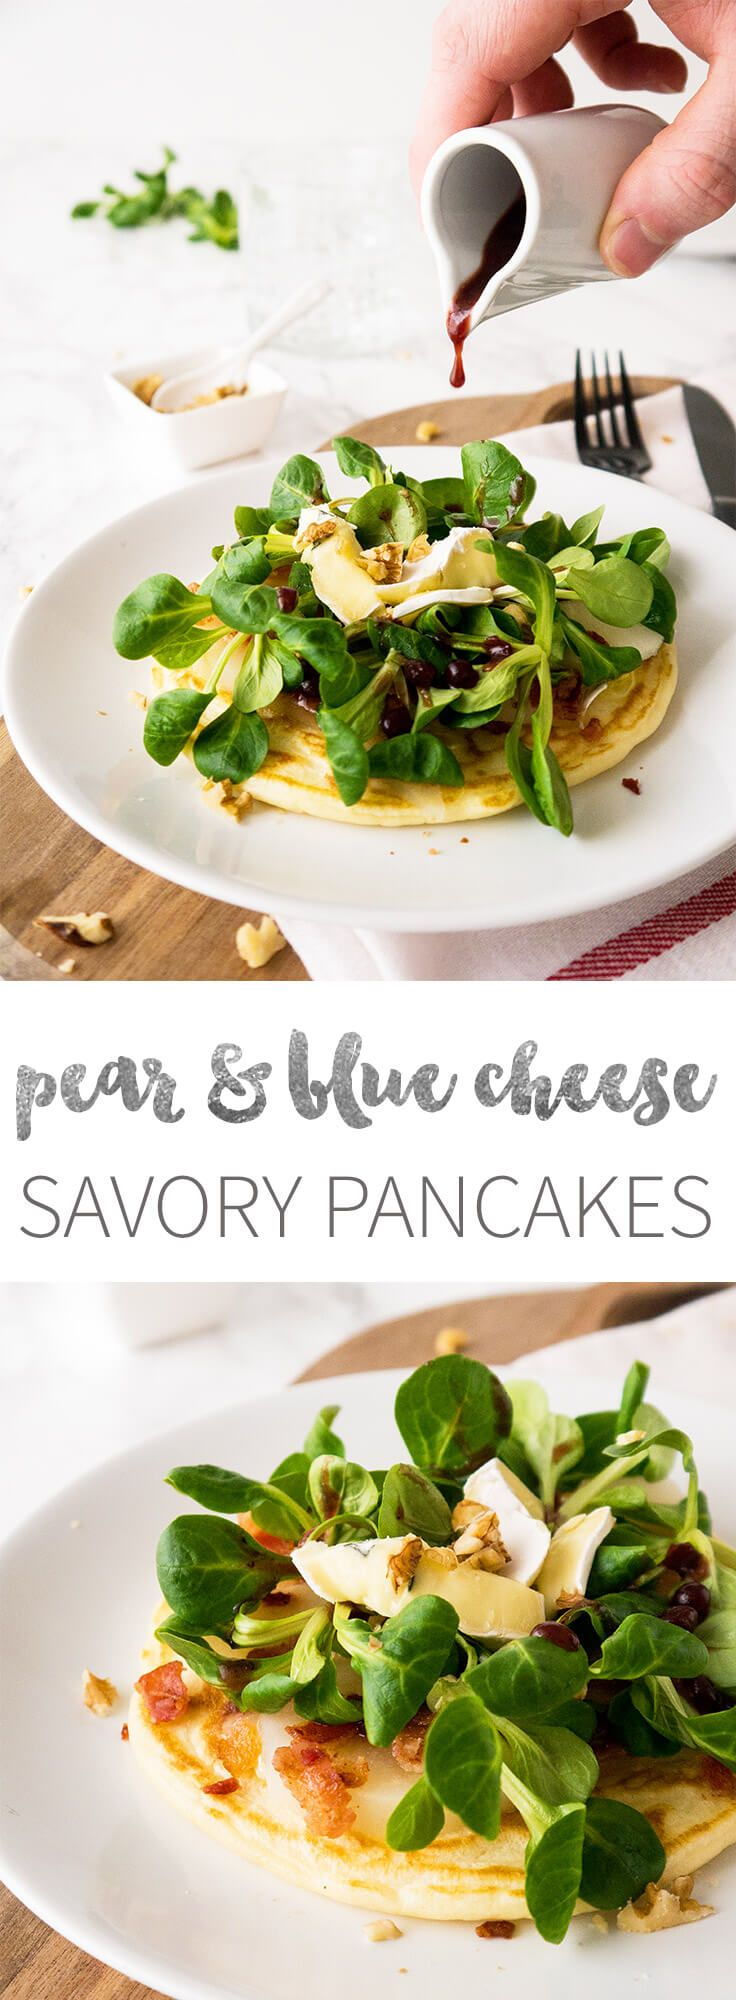 Savoury Pancakes with pear and blue cheese are topped with mache lettuce, bacon, & walnuts and drizzled with a cranberry balsamic vinegar dressing. Perfect for brunch!